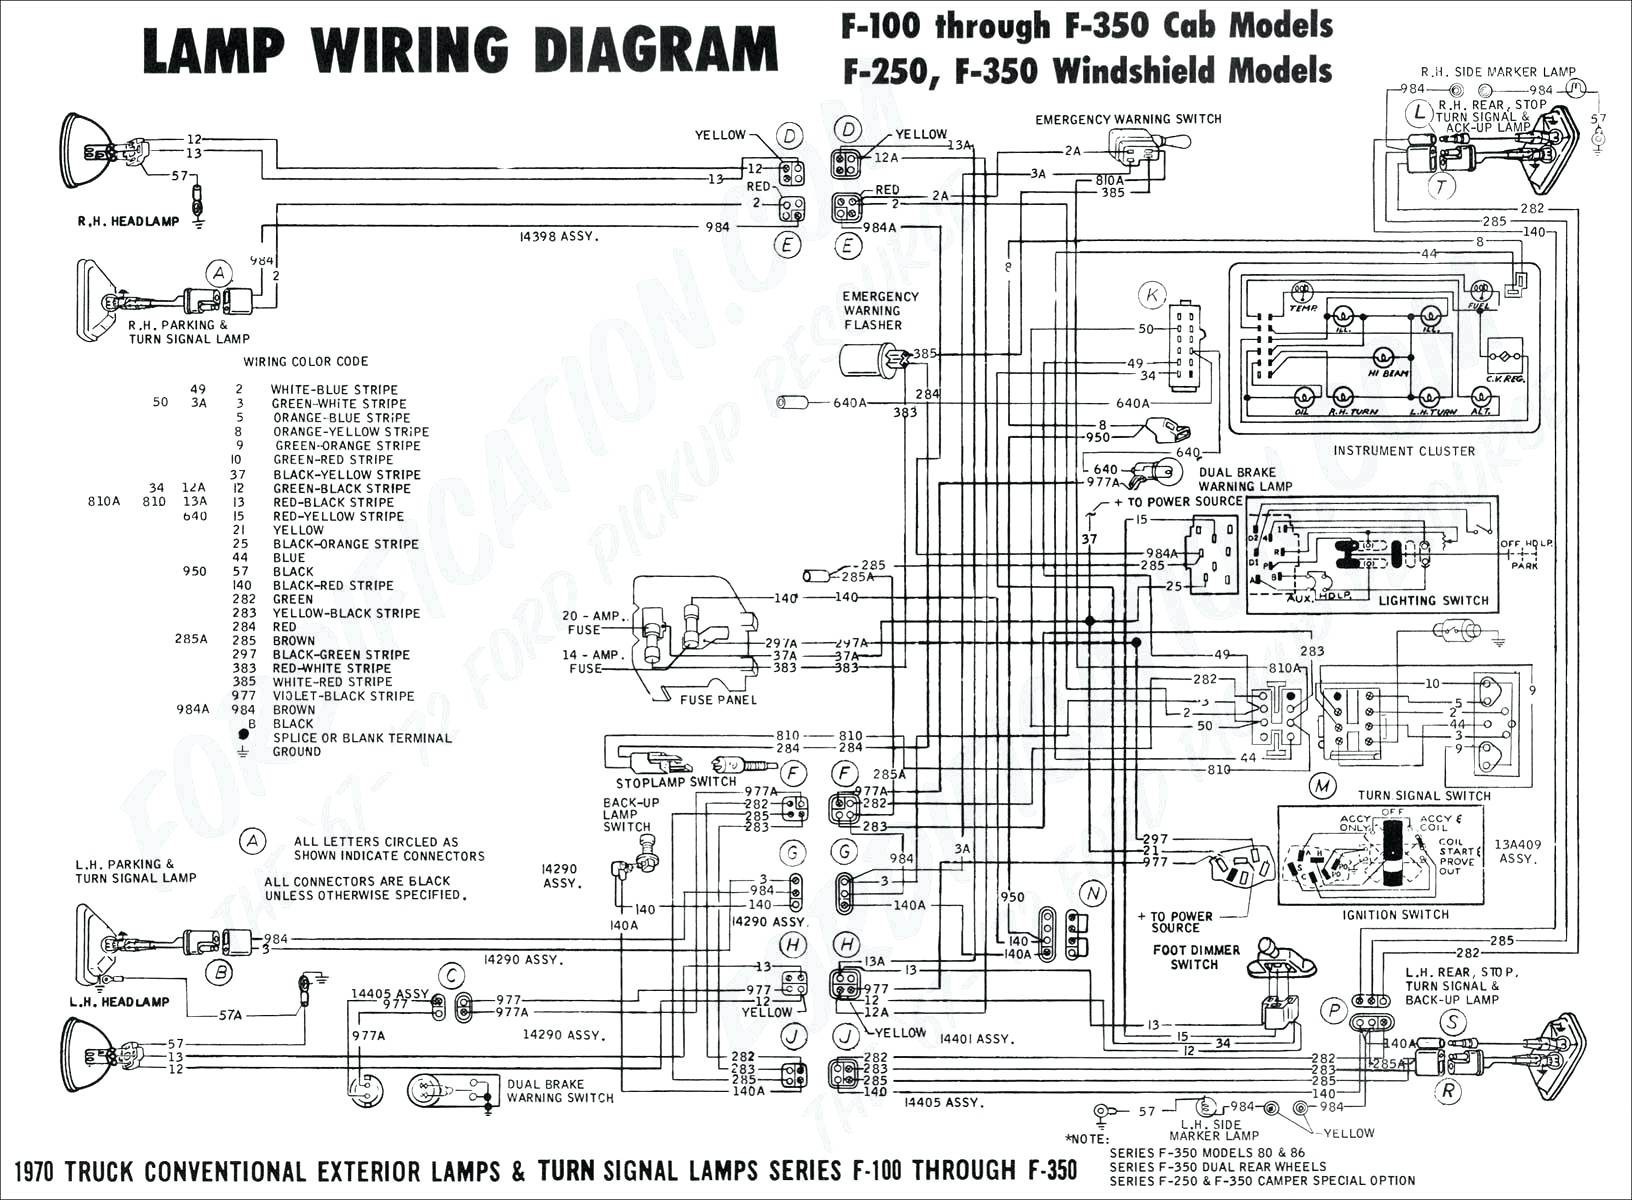 2003 Chevy Impala Engine Diagram 1996 Chevy Trailer Wiring Diagram Premium Wiring Diagram Of 2003 Chevy Impala Engine Diagram